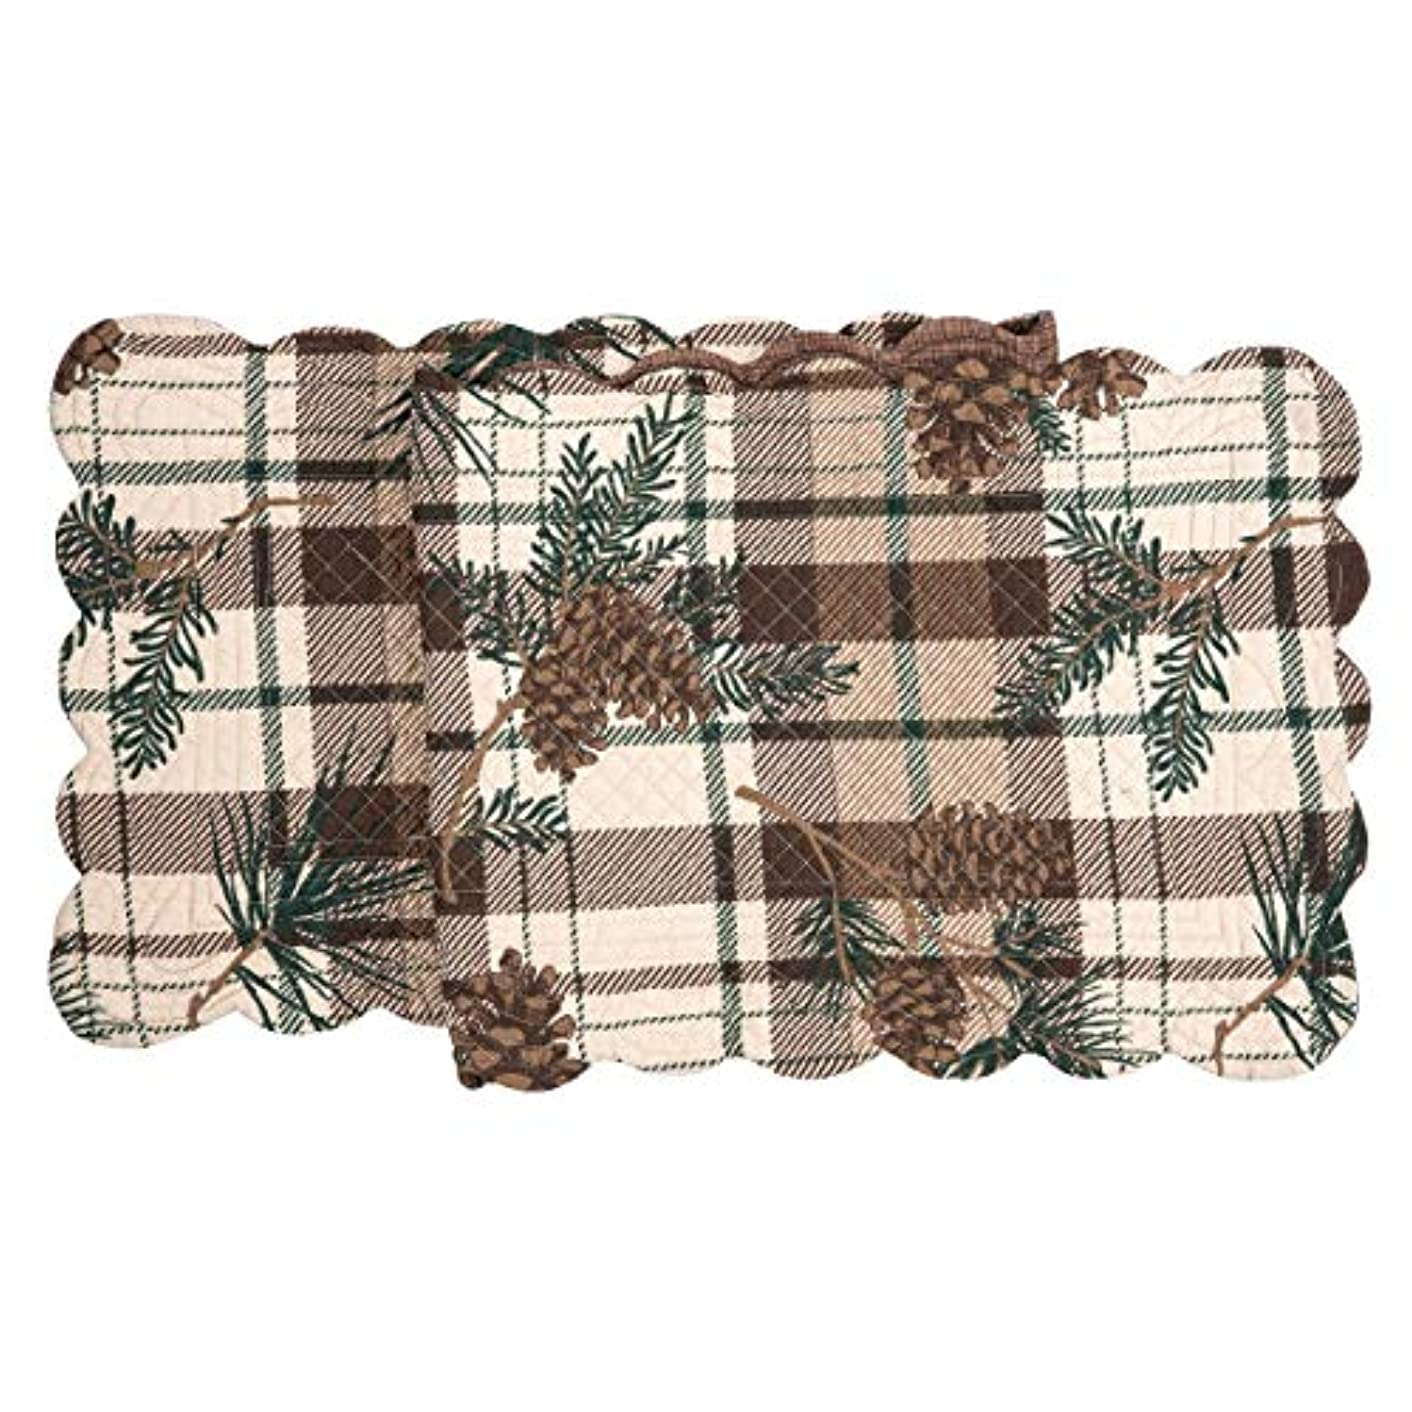 C&F Home Lookout Lodge Cotton Quilted Table Runner 14 x 51 Runner 14x51 Tan